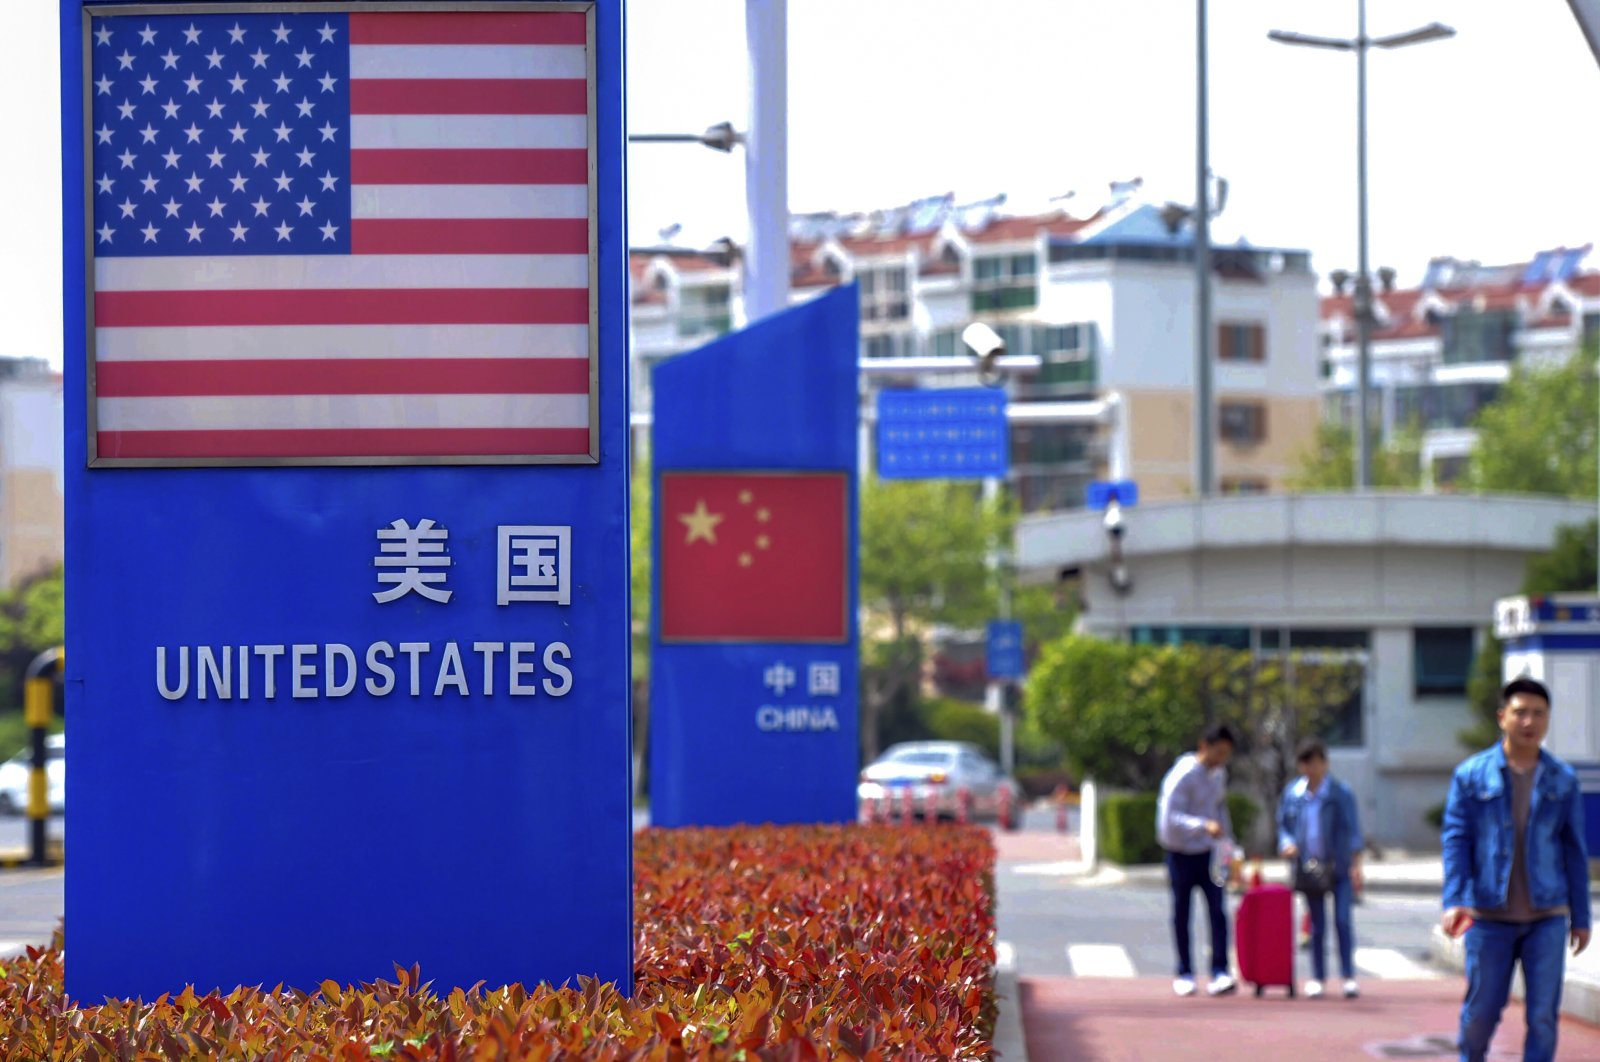 People walk by display boards featuring the U.S. and Chinese flags in a special trade zone in Qingdao in eastern China's Shandong province, May 8, 2019. (AP Photo)